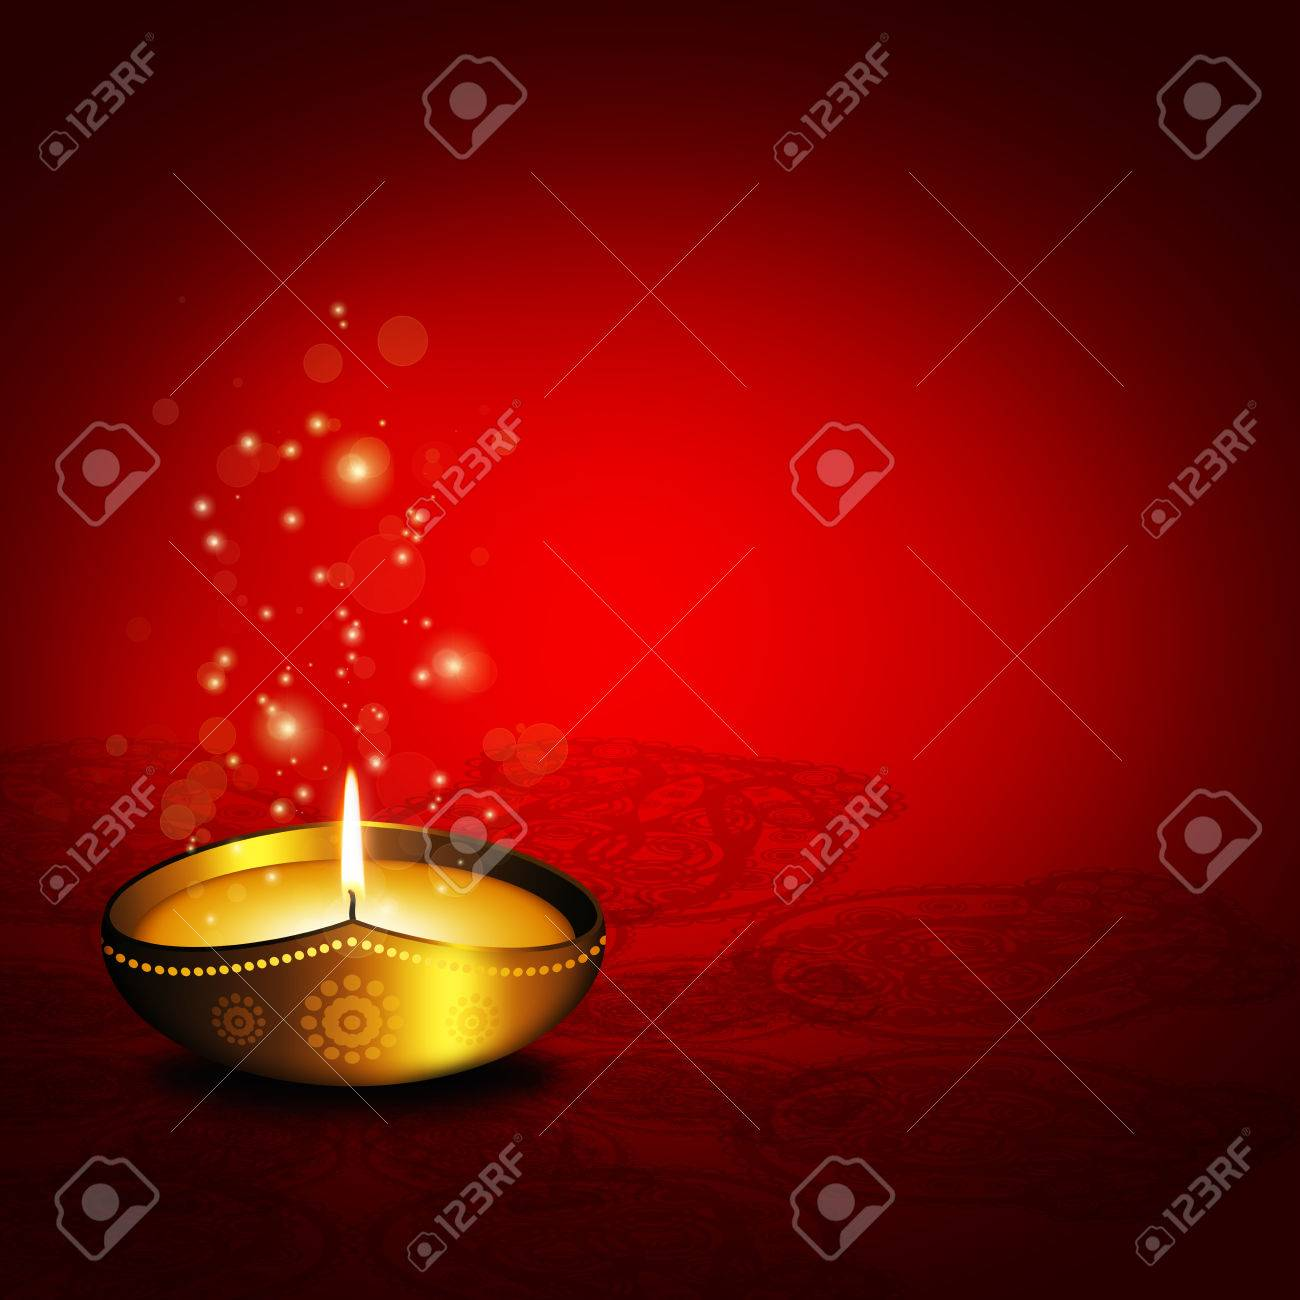 Oil Lamp With Place For Diwali Greetings Over Dark Red Stock Photo